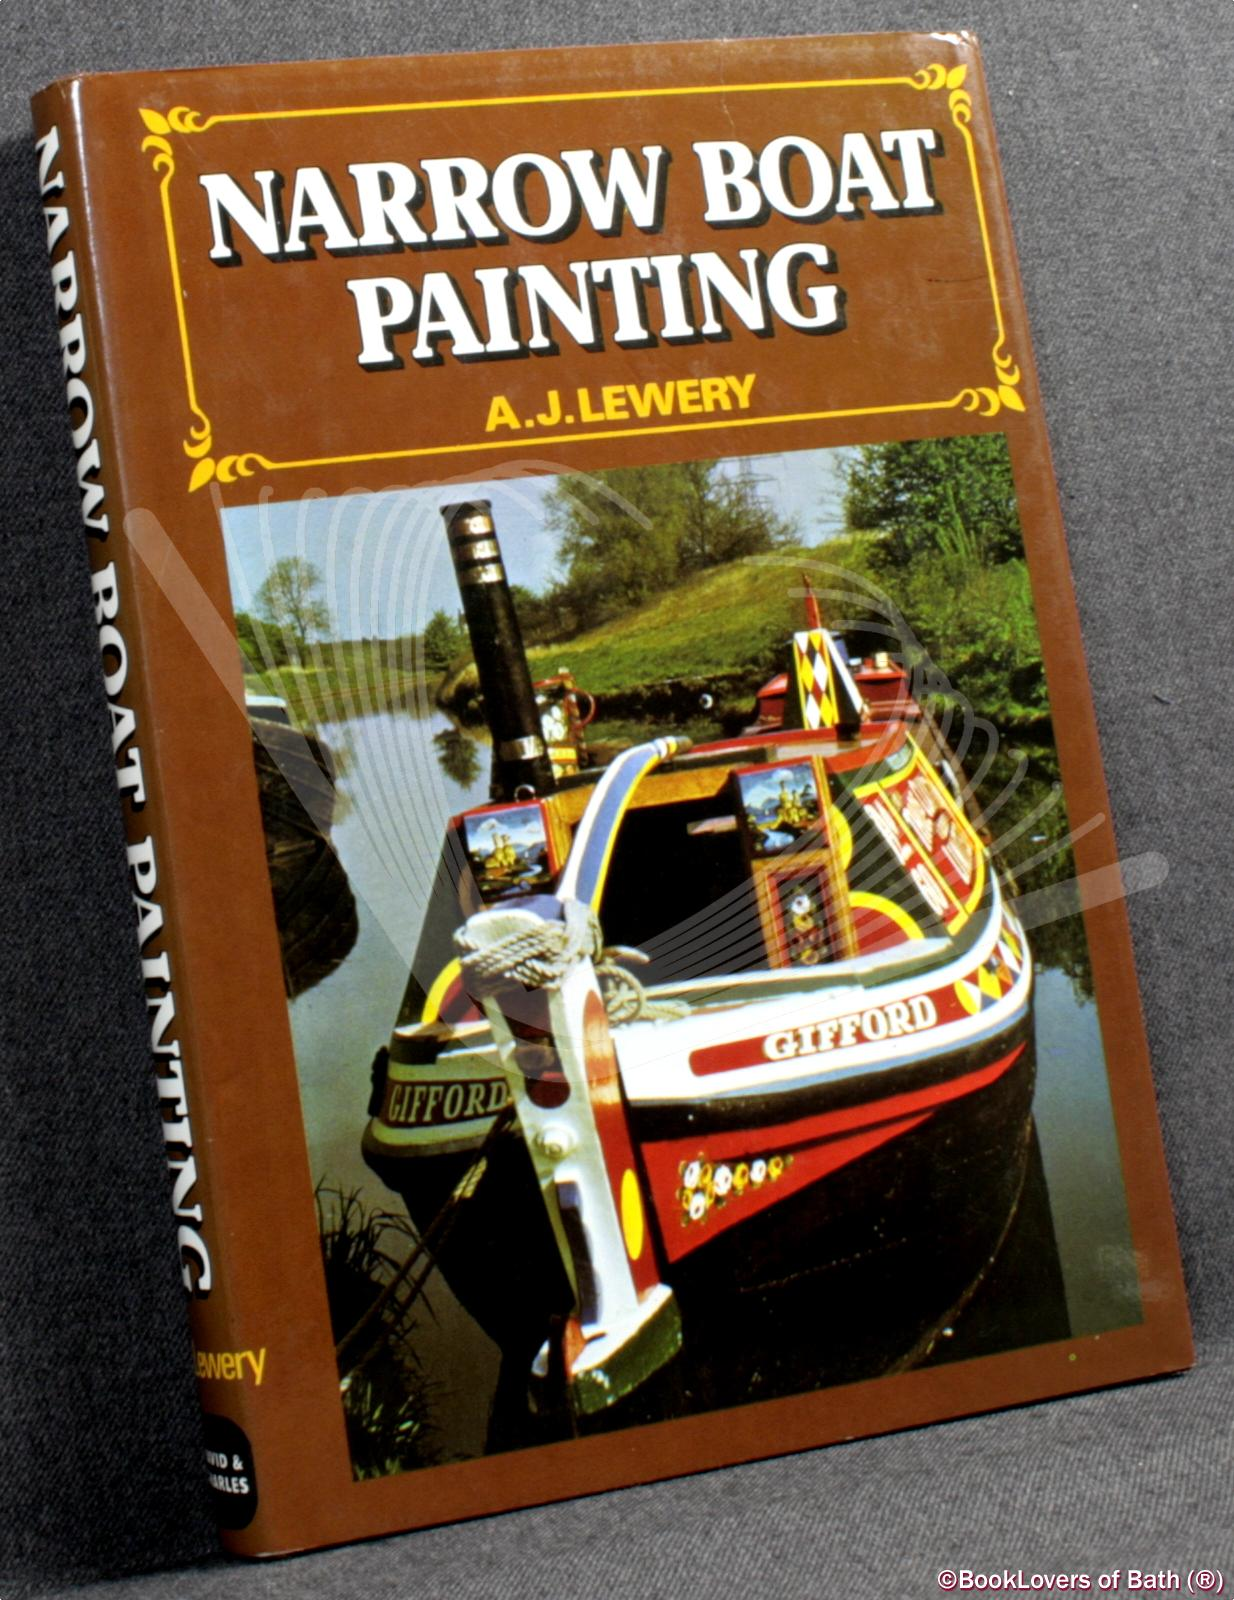 Narrow Boat Painting: A History and Description of the English Narrow Boats' Traditional Paintwork - A. J. [Anthony John] Lewery